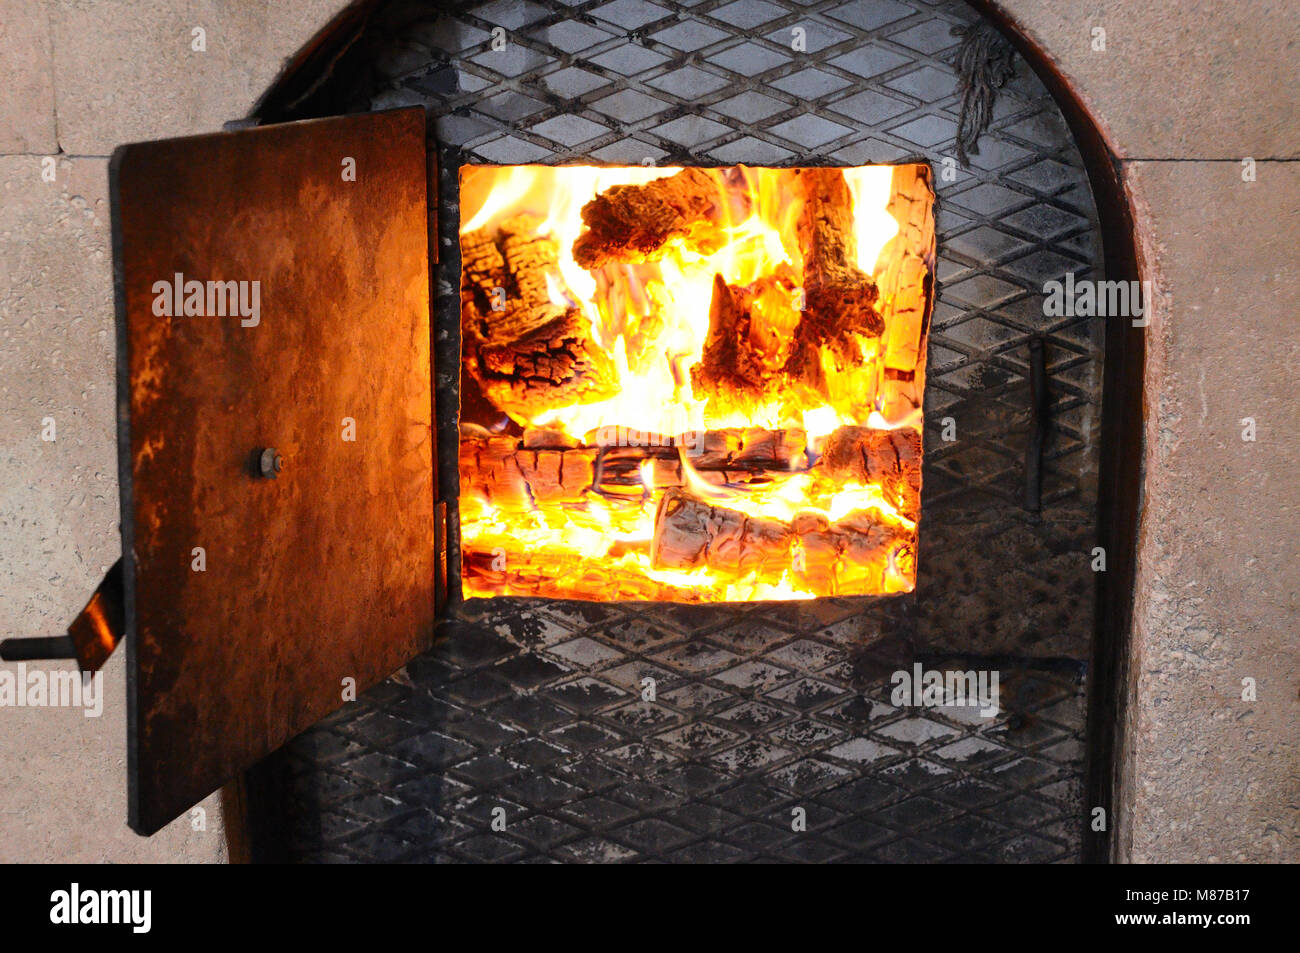 Wood fire in an stone stove - Stock Image